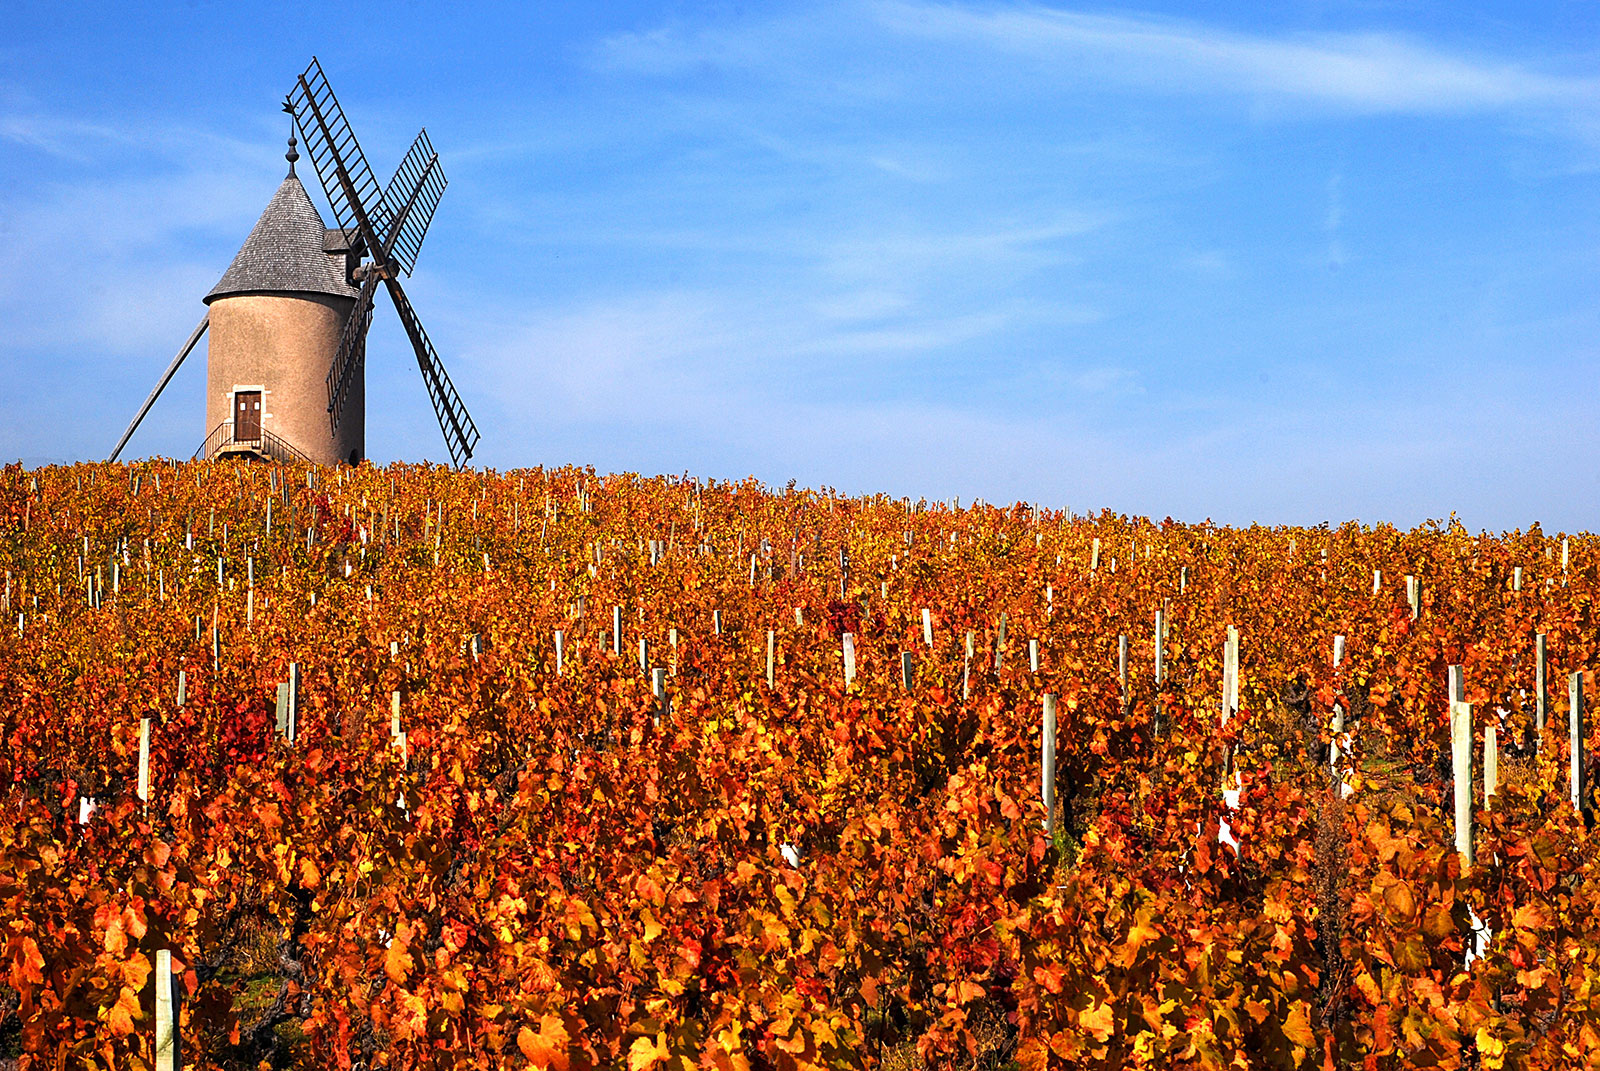 The famous namesake windmill that crowns Moulin-à-Vent. ©Château du Moulin-à-Vent